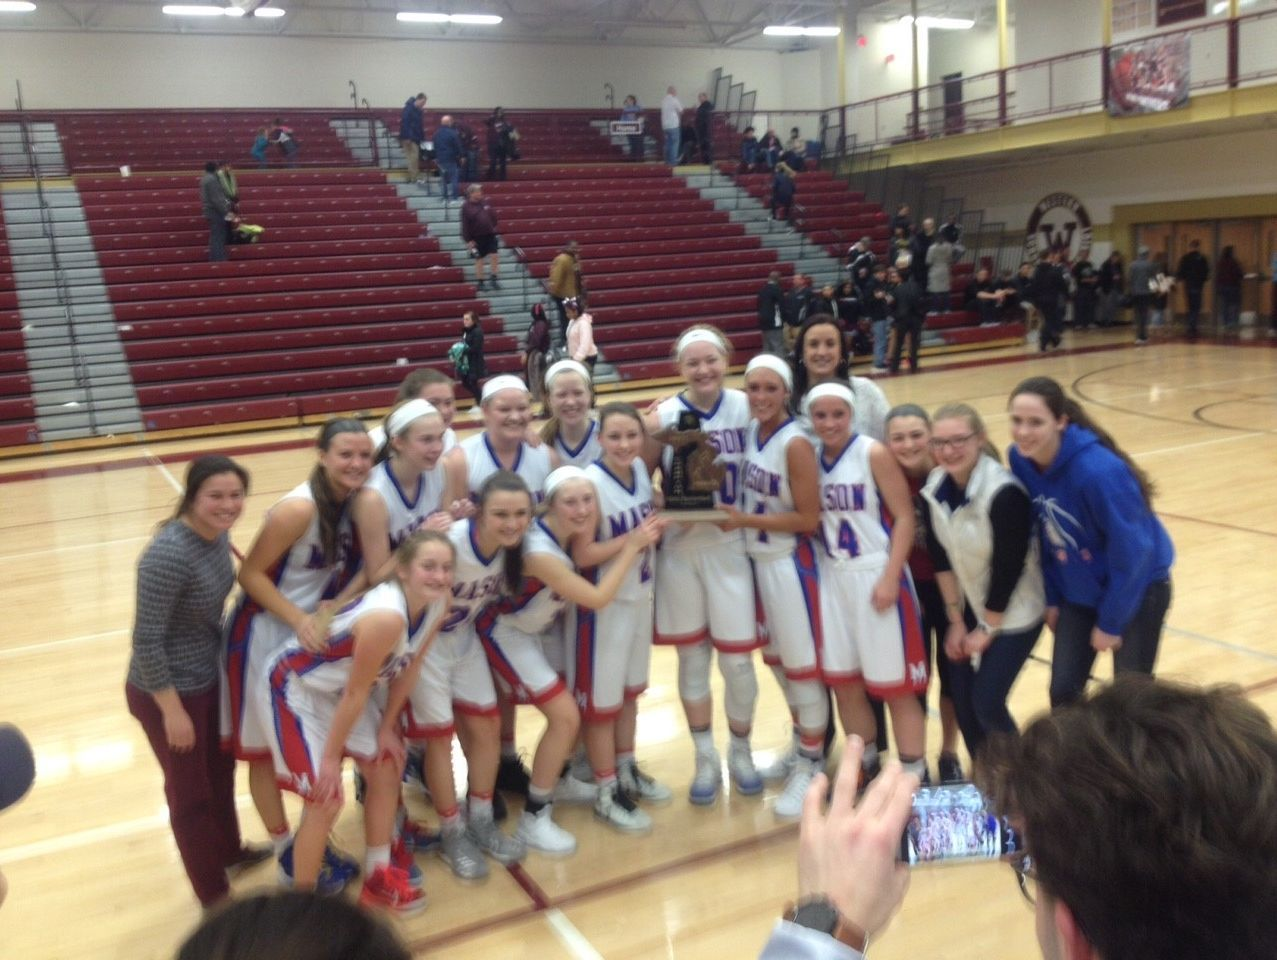 The Mason girls basketball team celebrates its 2017 district title after beating Okemos.